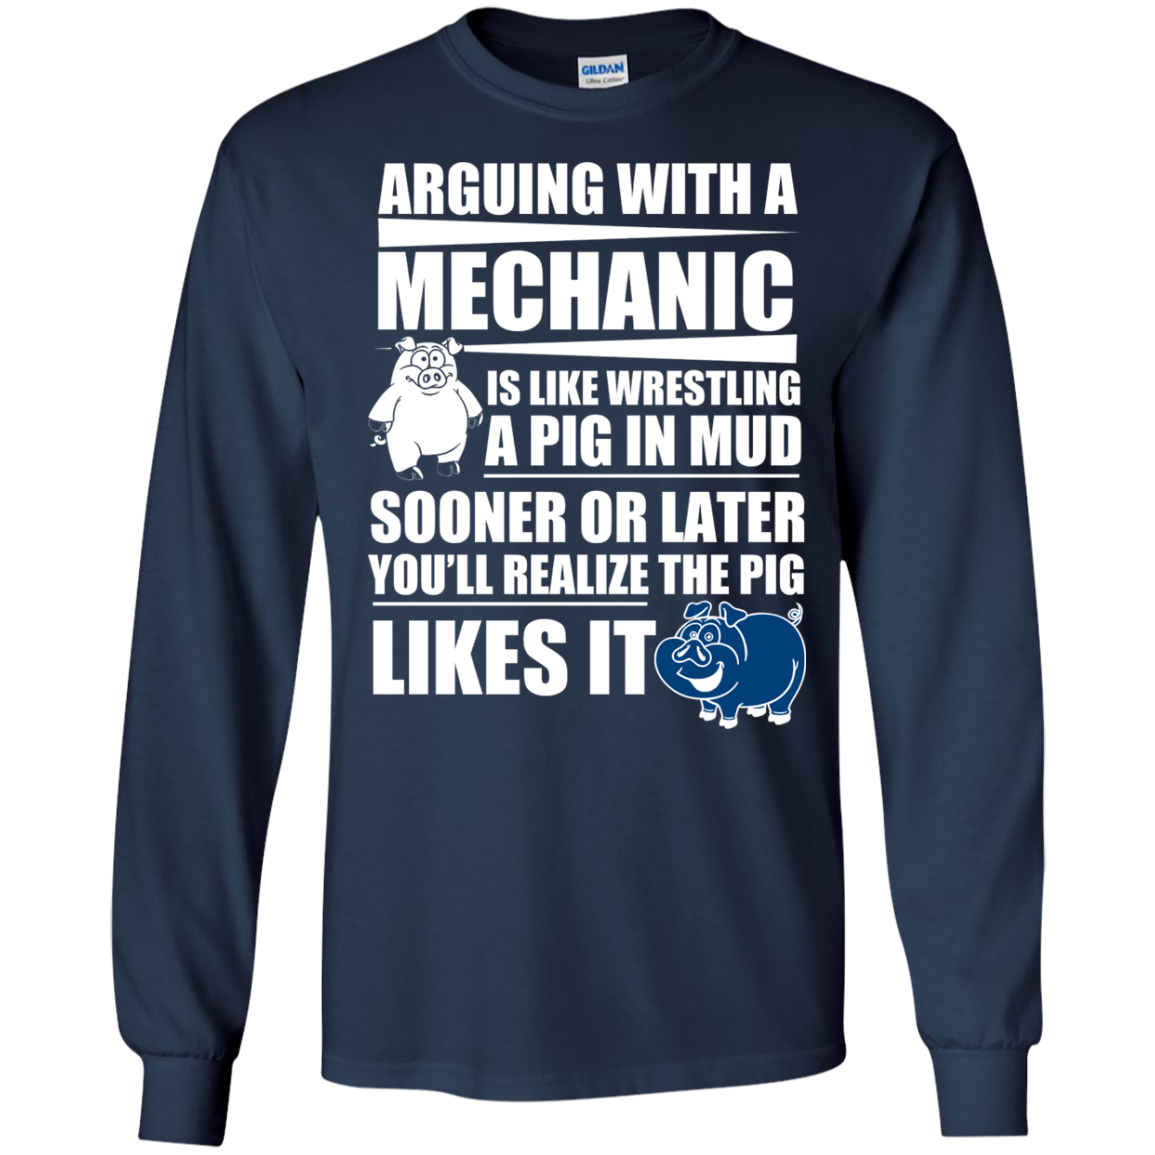 ARGUING WITH A MECHANIC IS LIKE WRESTING A PIG IN MUD T-Shirt & Hoodie - The Sun Cat